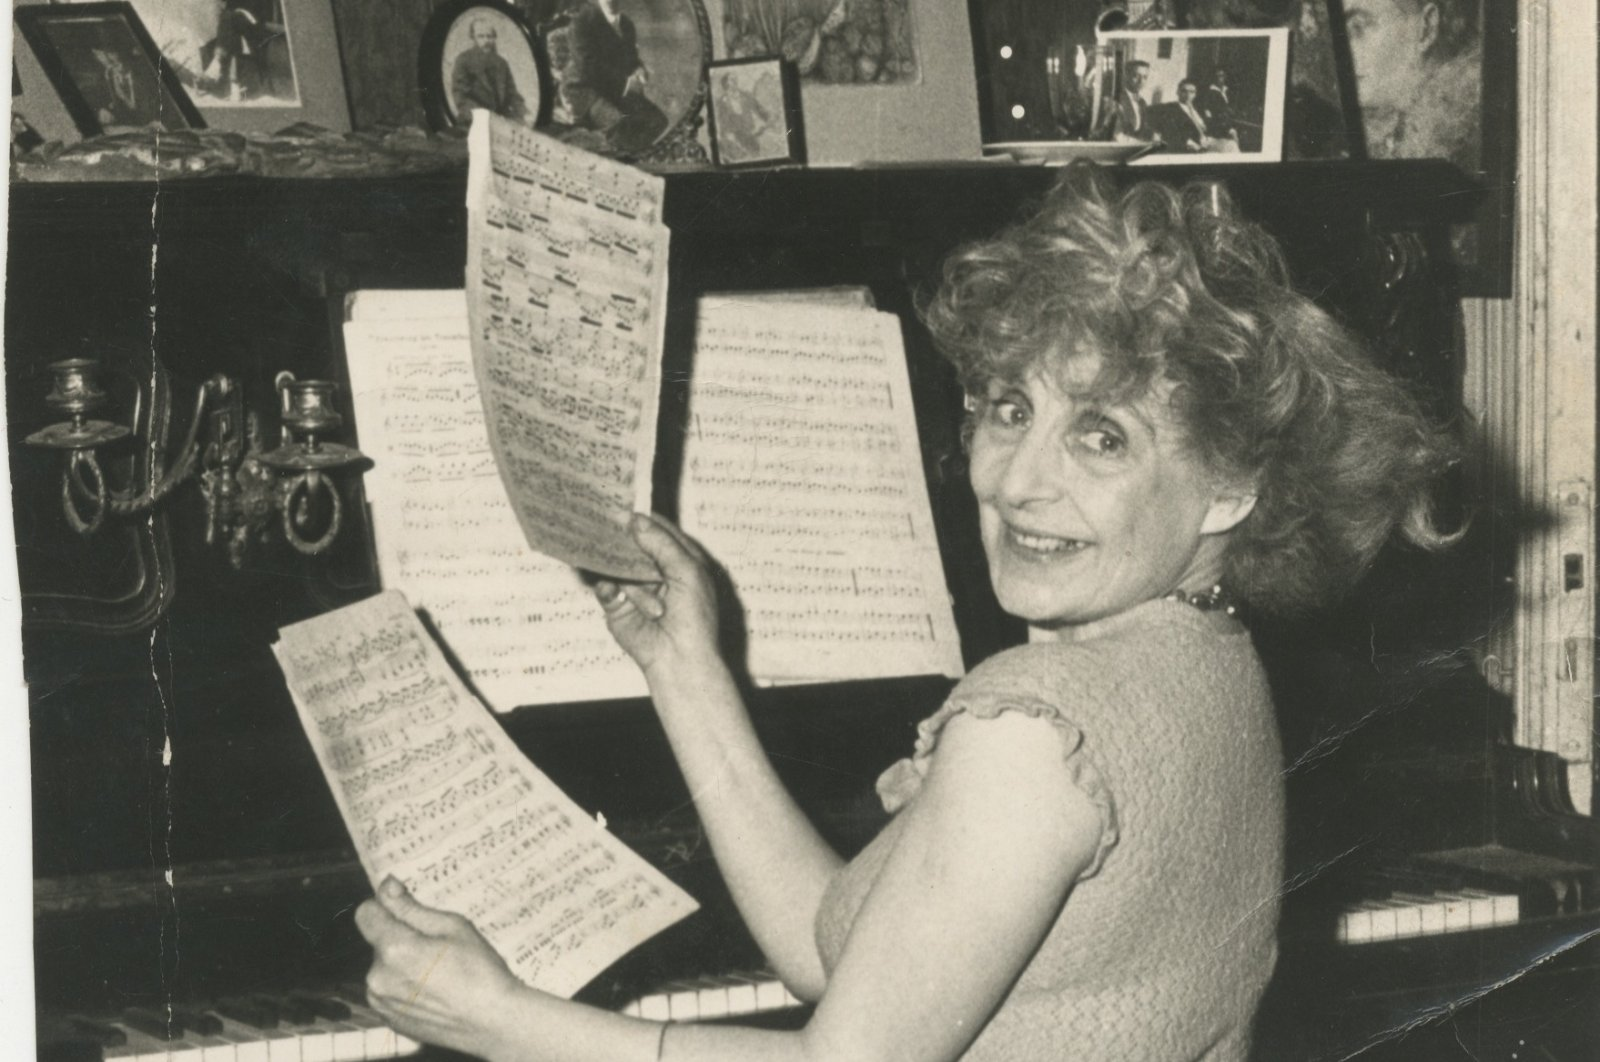 Aliye Berger poses with pages of a music notebook in front of her piano. (Courtesy of SALT Research)